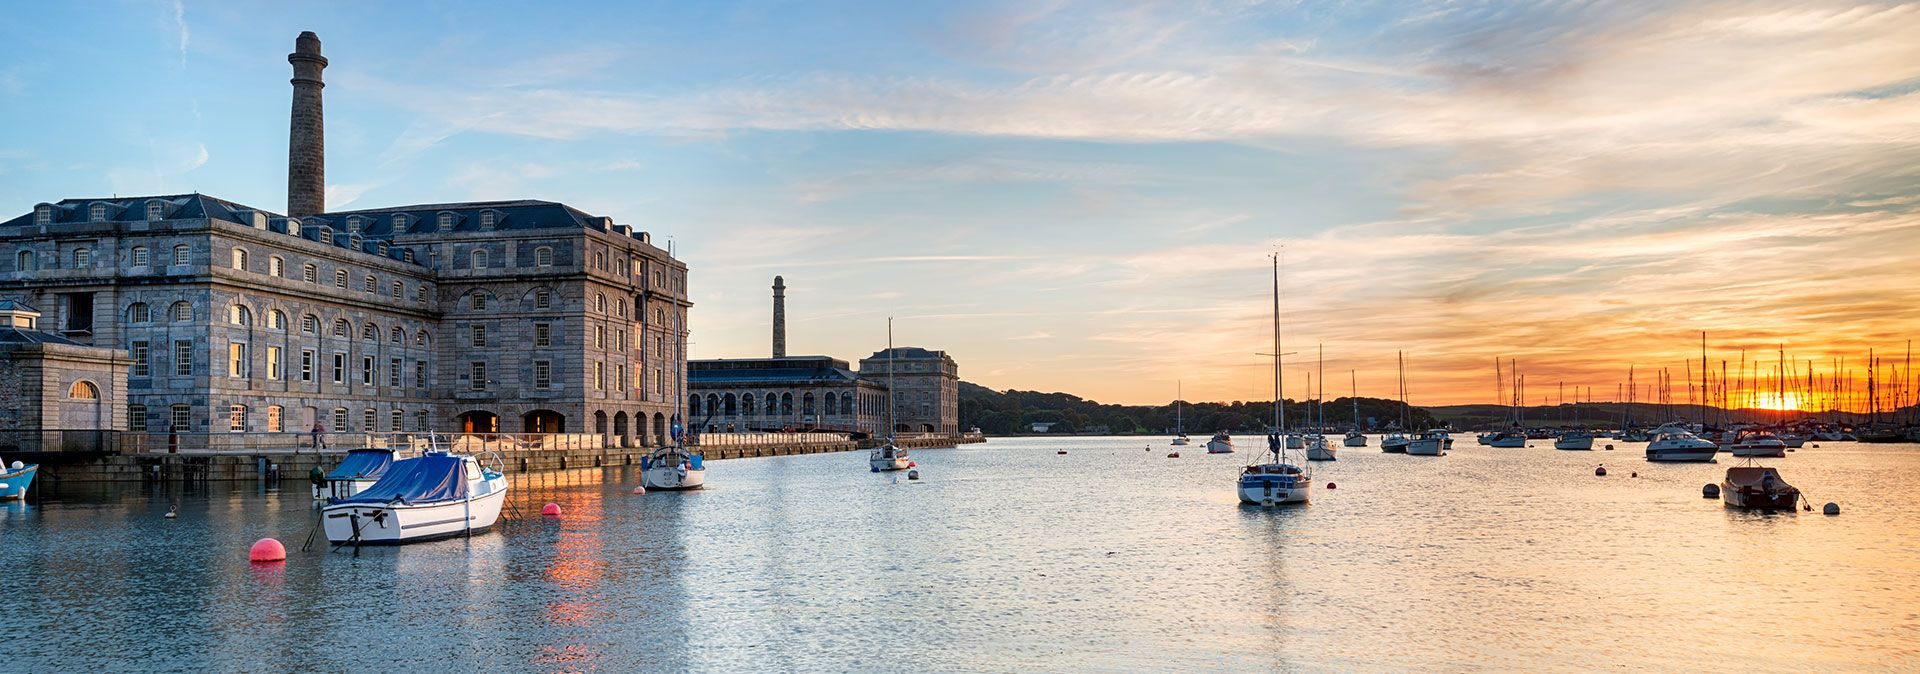 Royal William Yard Plymouth Sunset